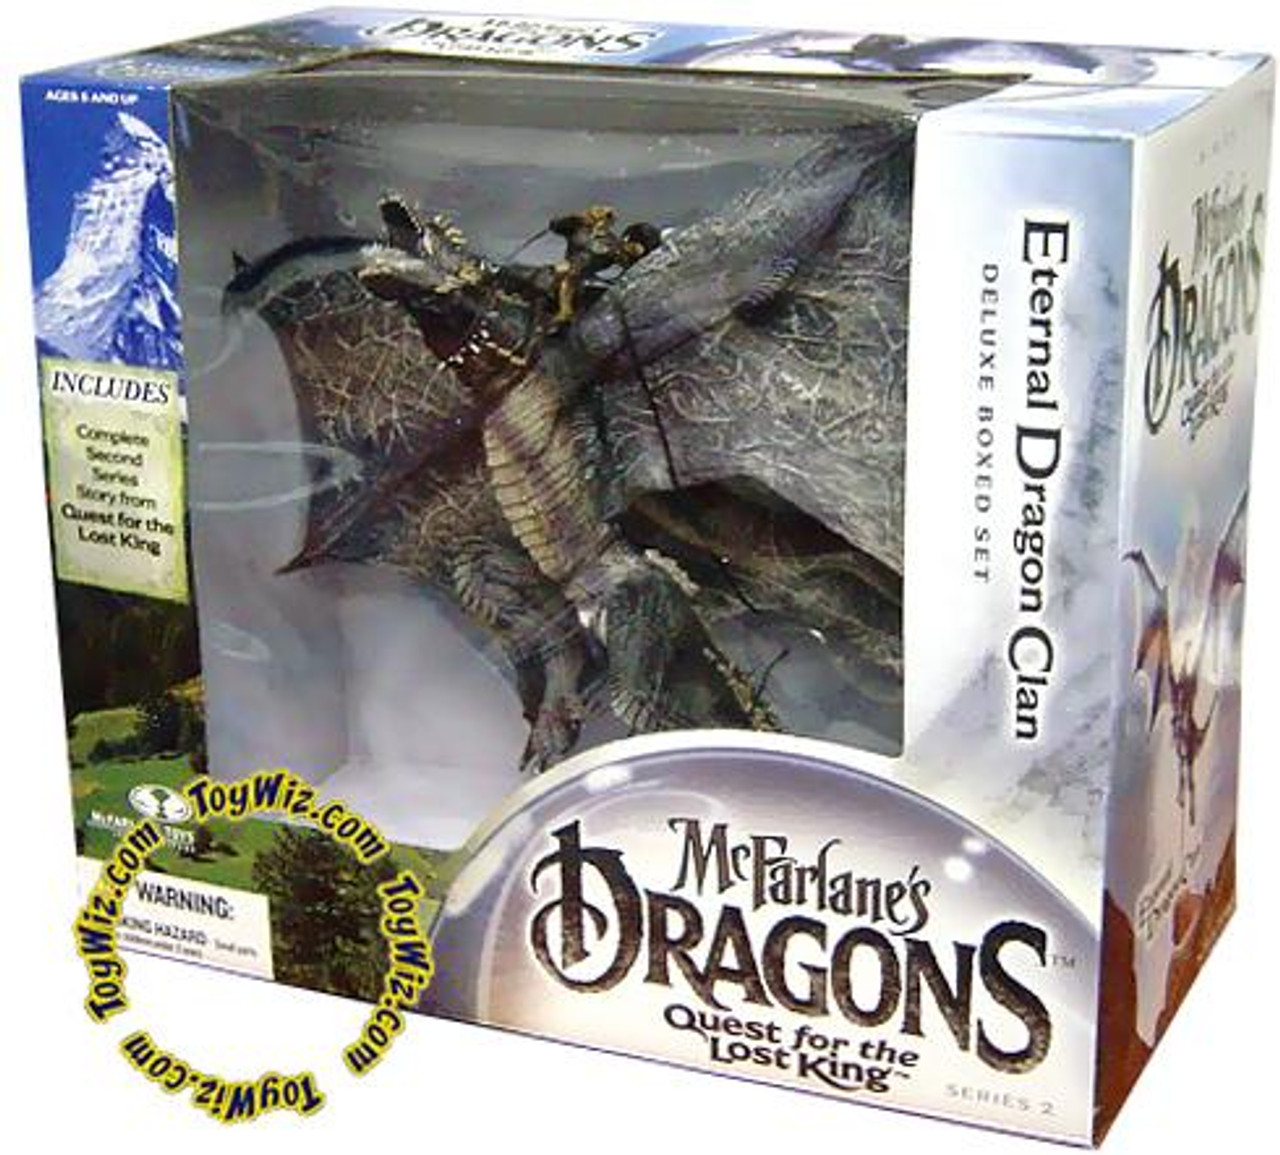 McFarlane Toys Dragons Quest for the Lost King Series 2 Eternal Dragon Clan Action Figure